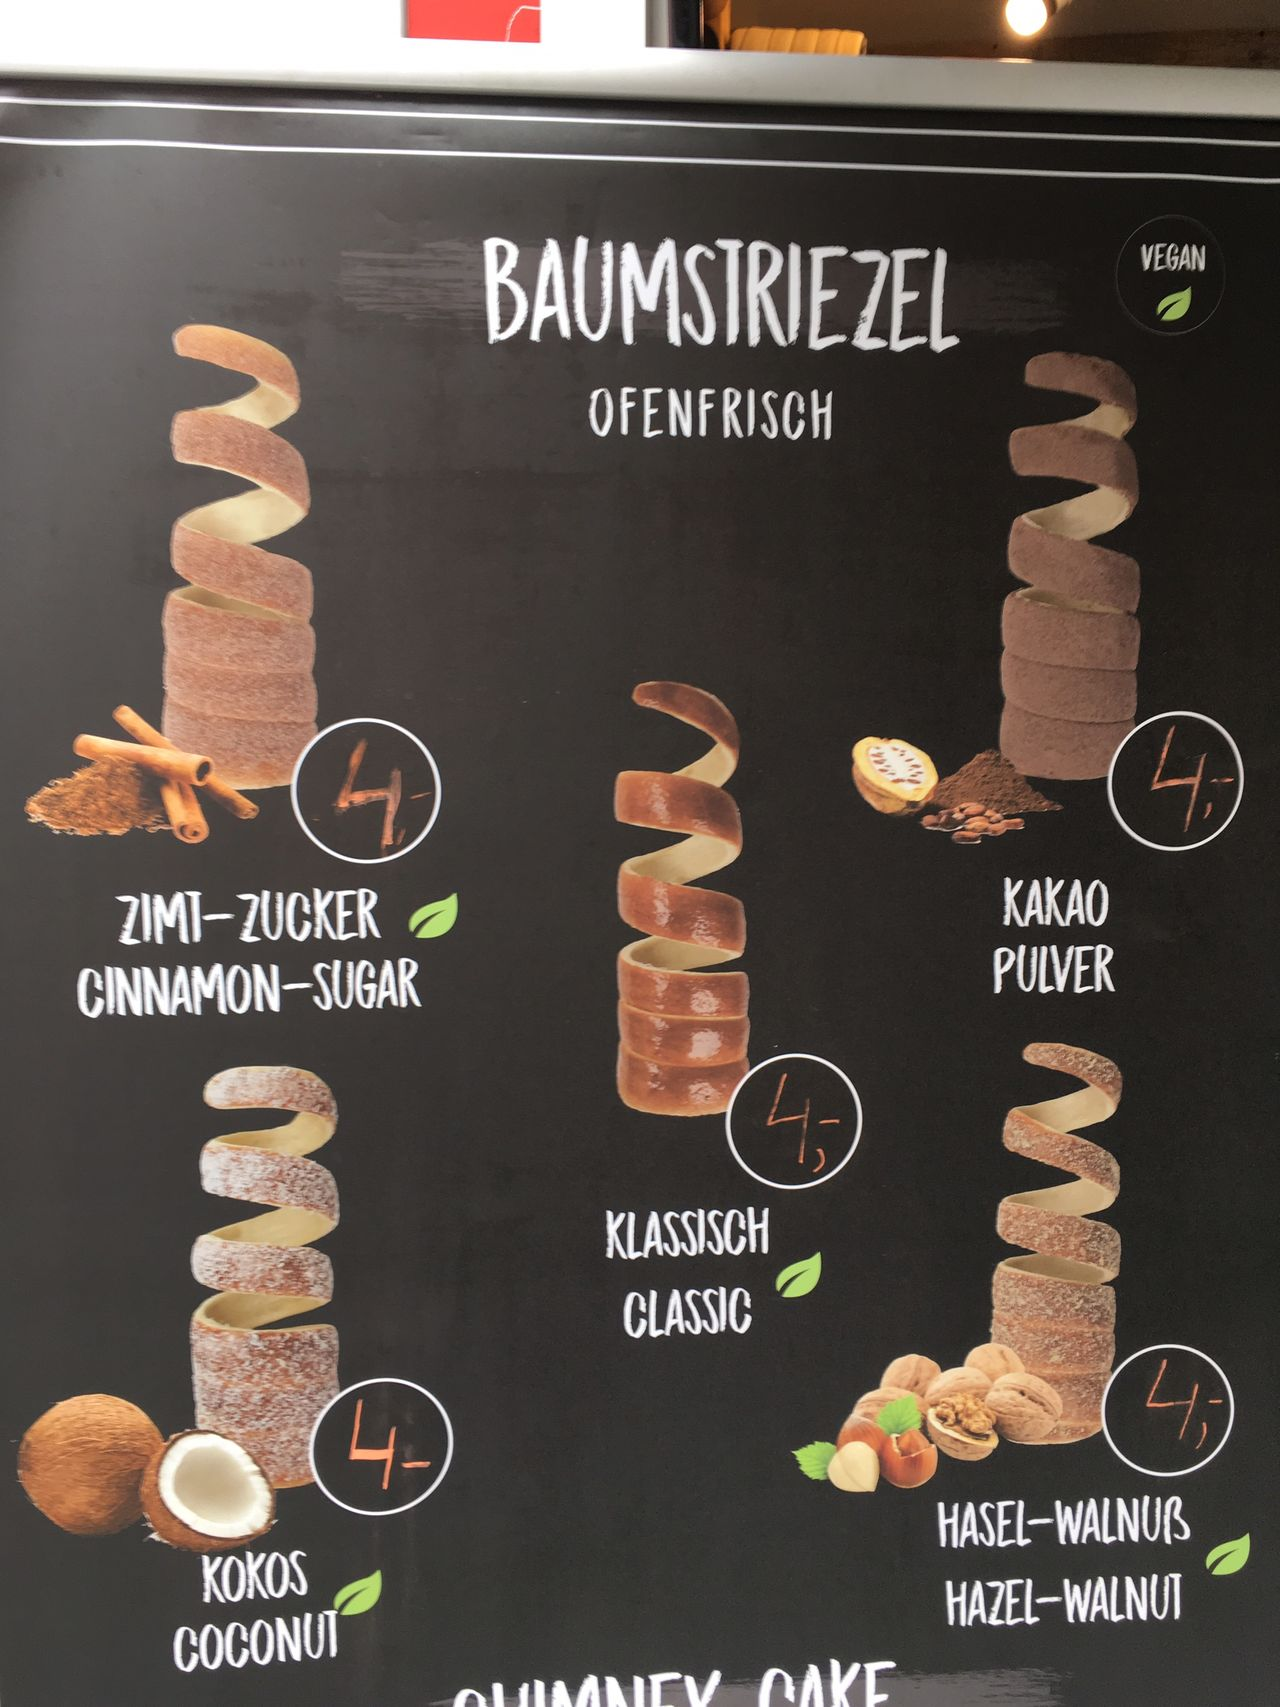 A photo of Kitty's Baumstriezel